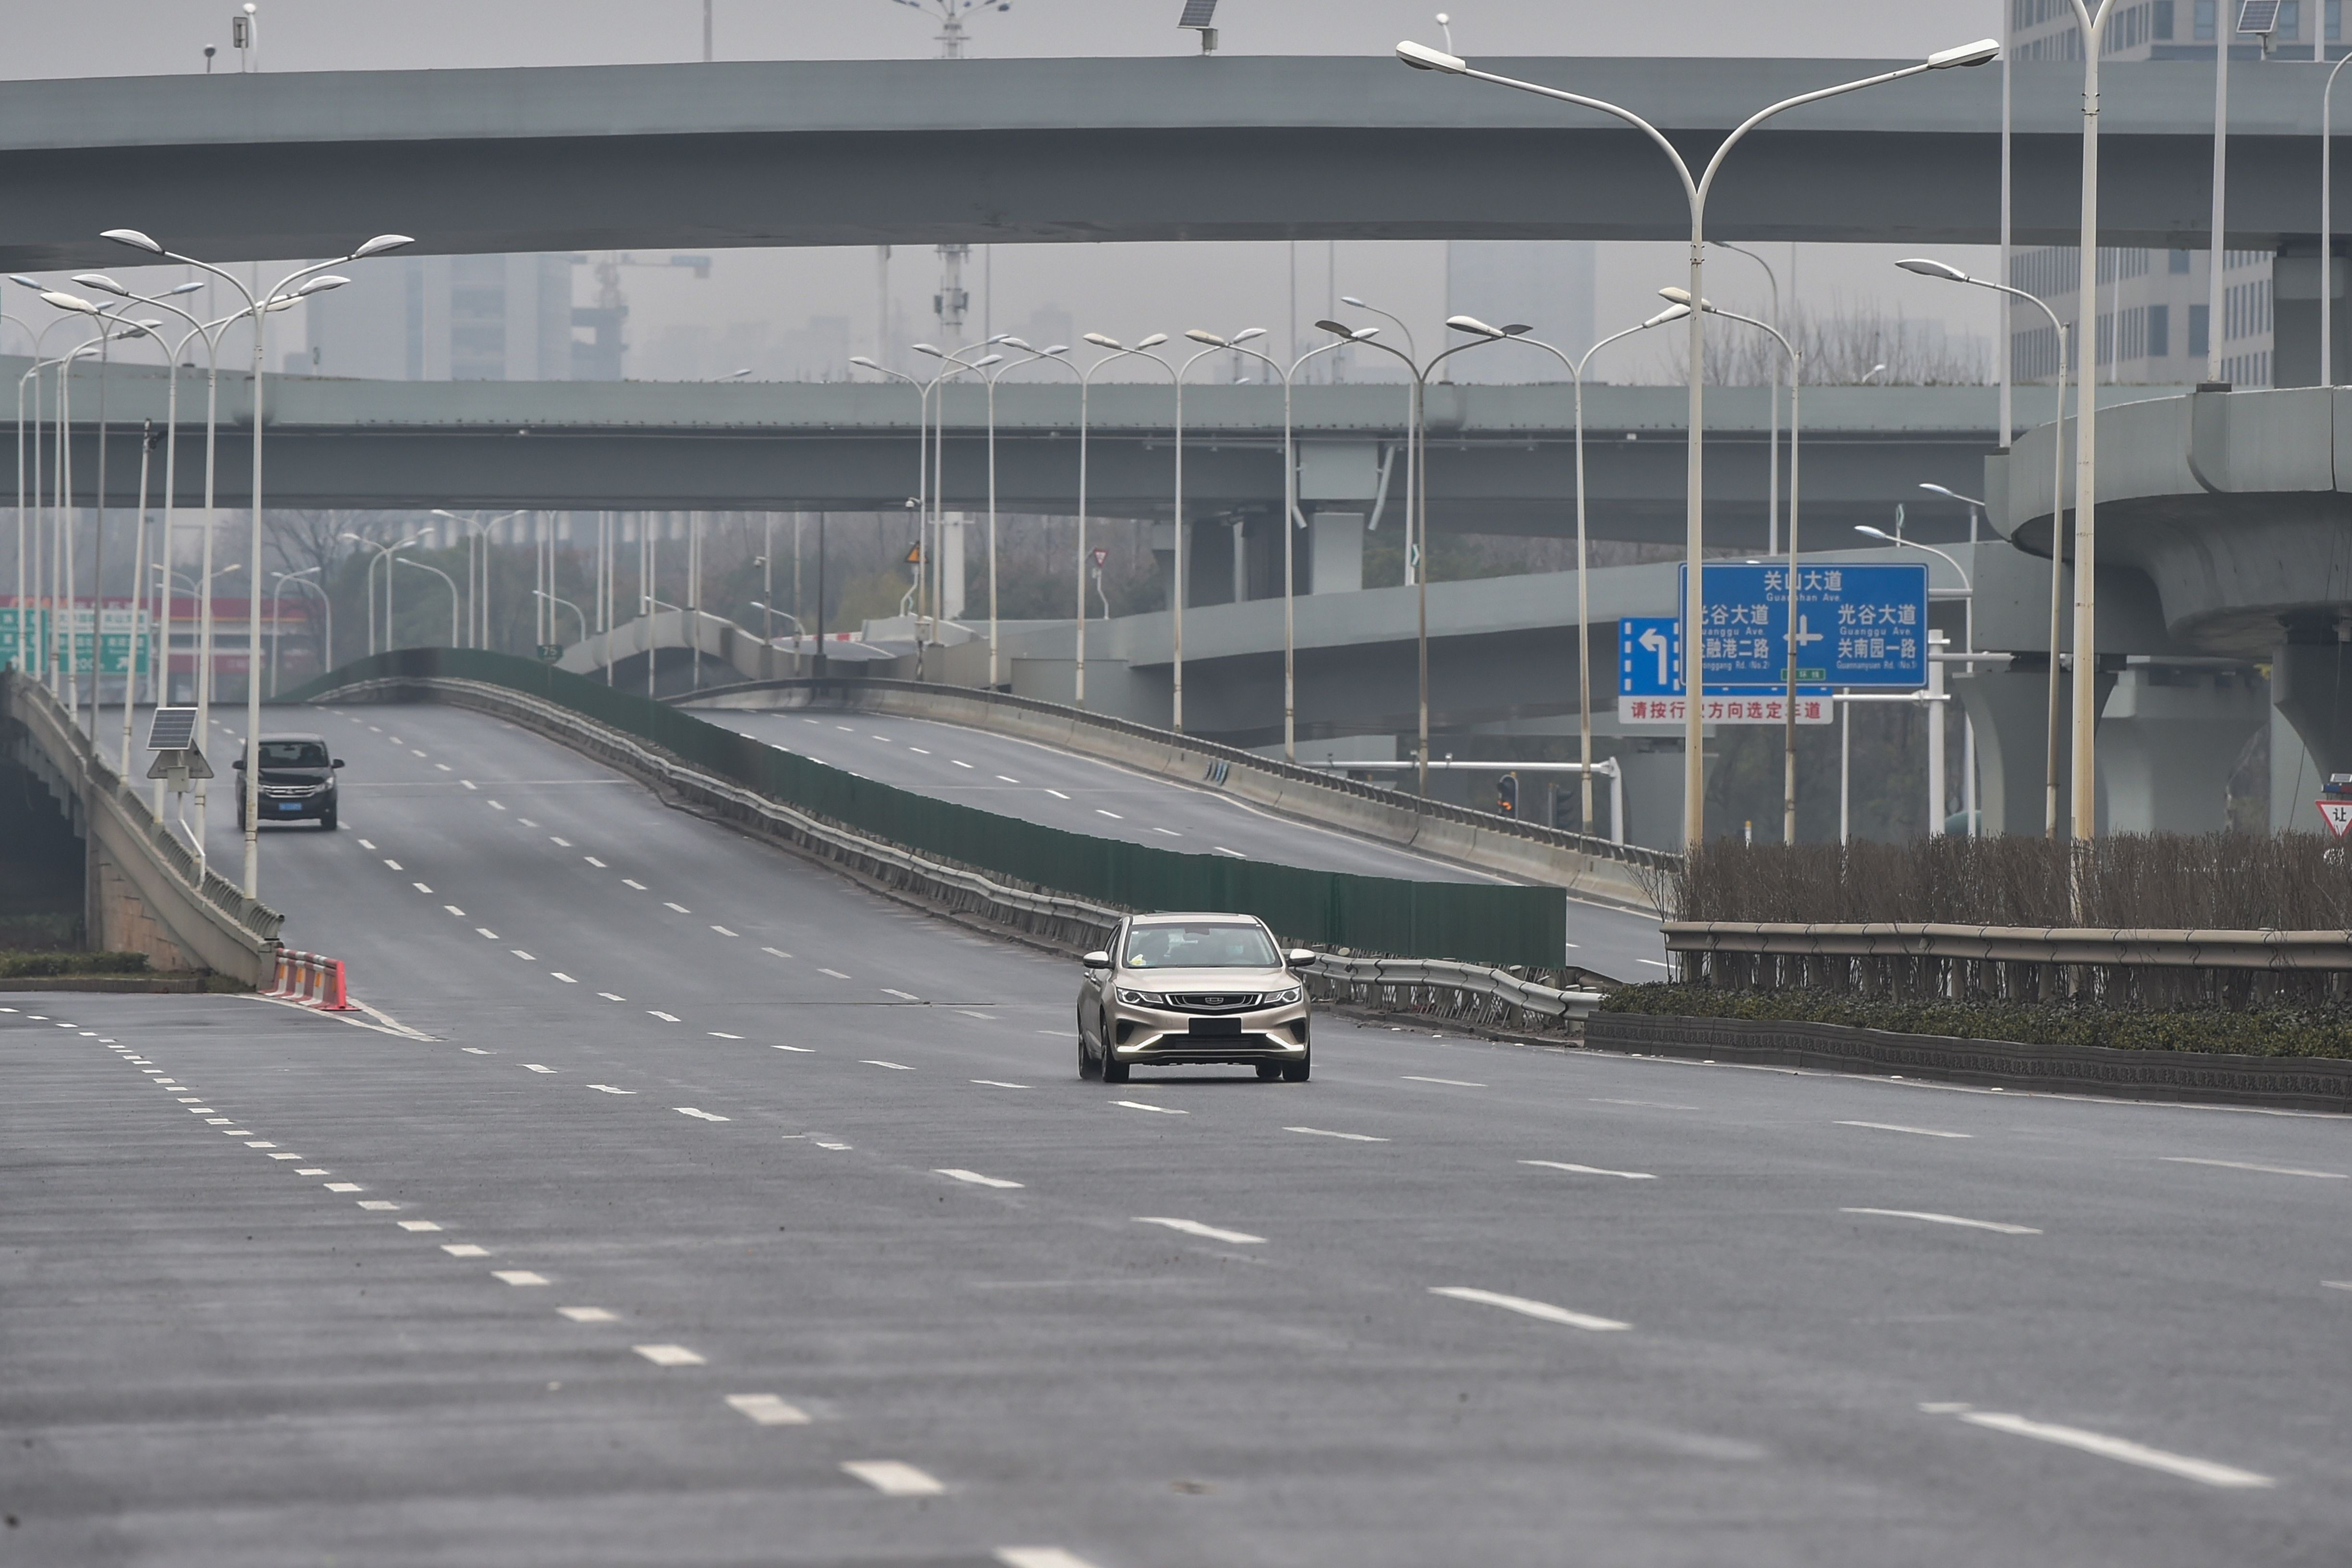 Cars are seen on a road on the first day of the Lunar New Year in Wuhan on Saturday.